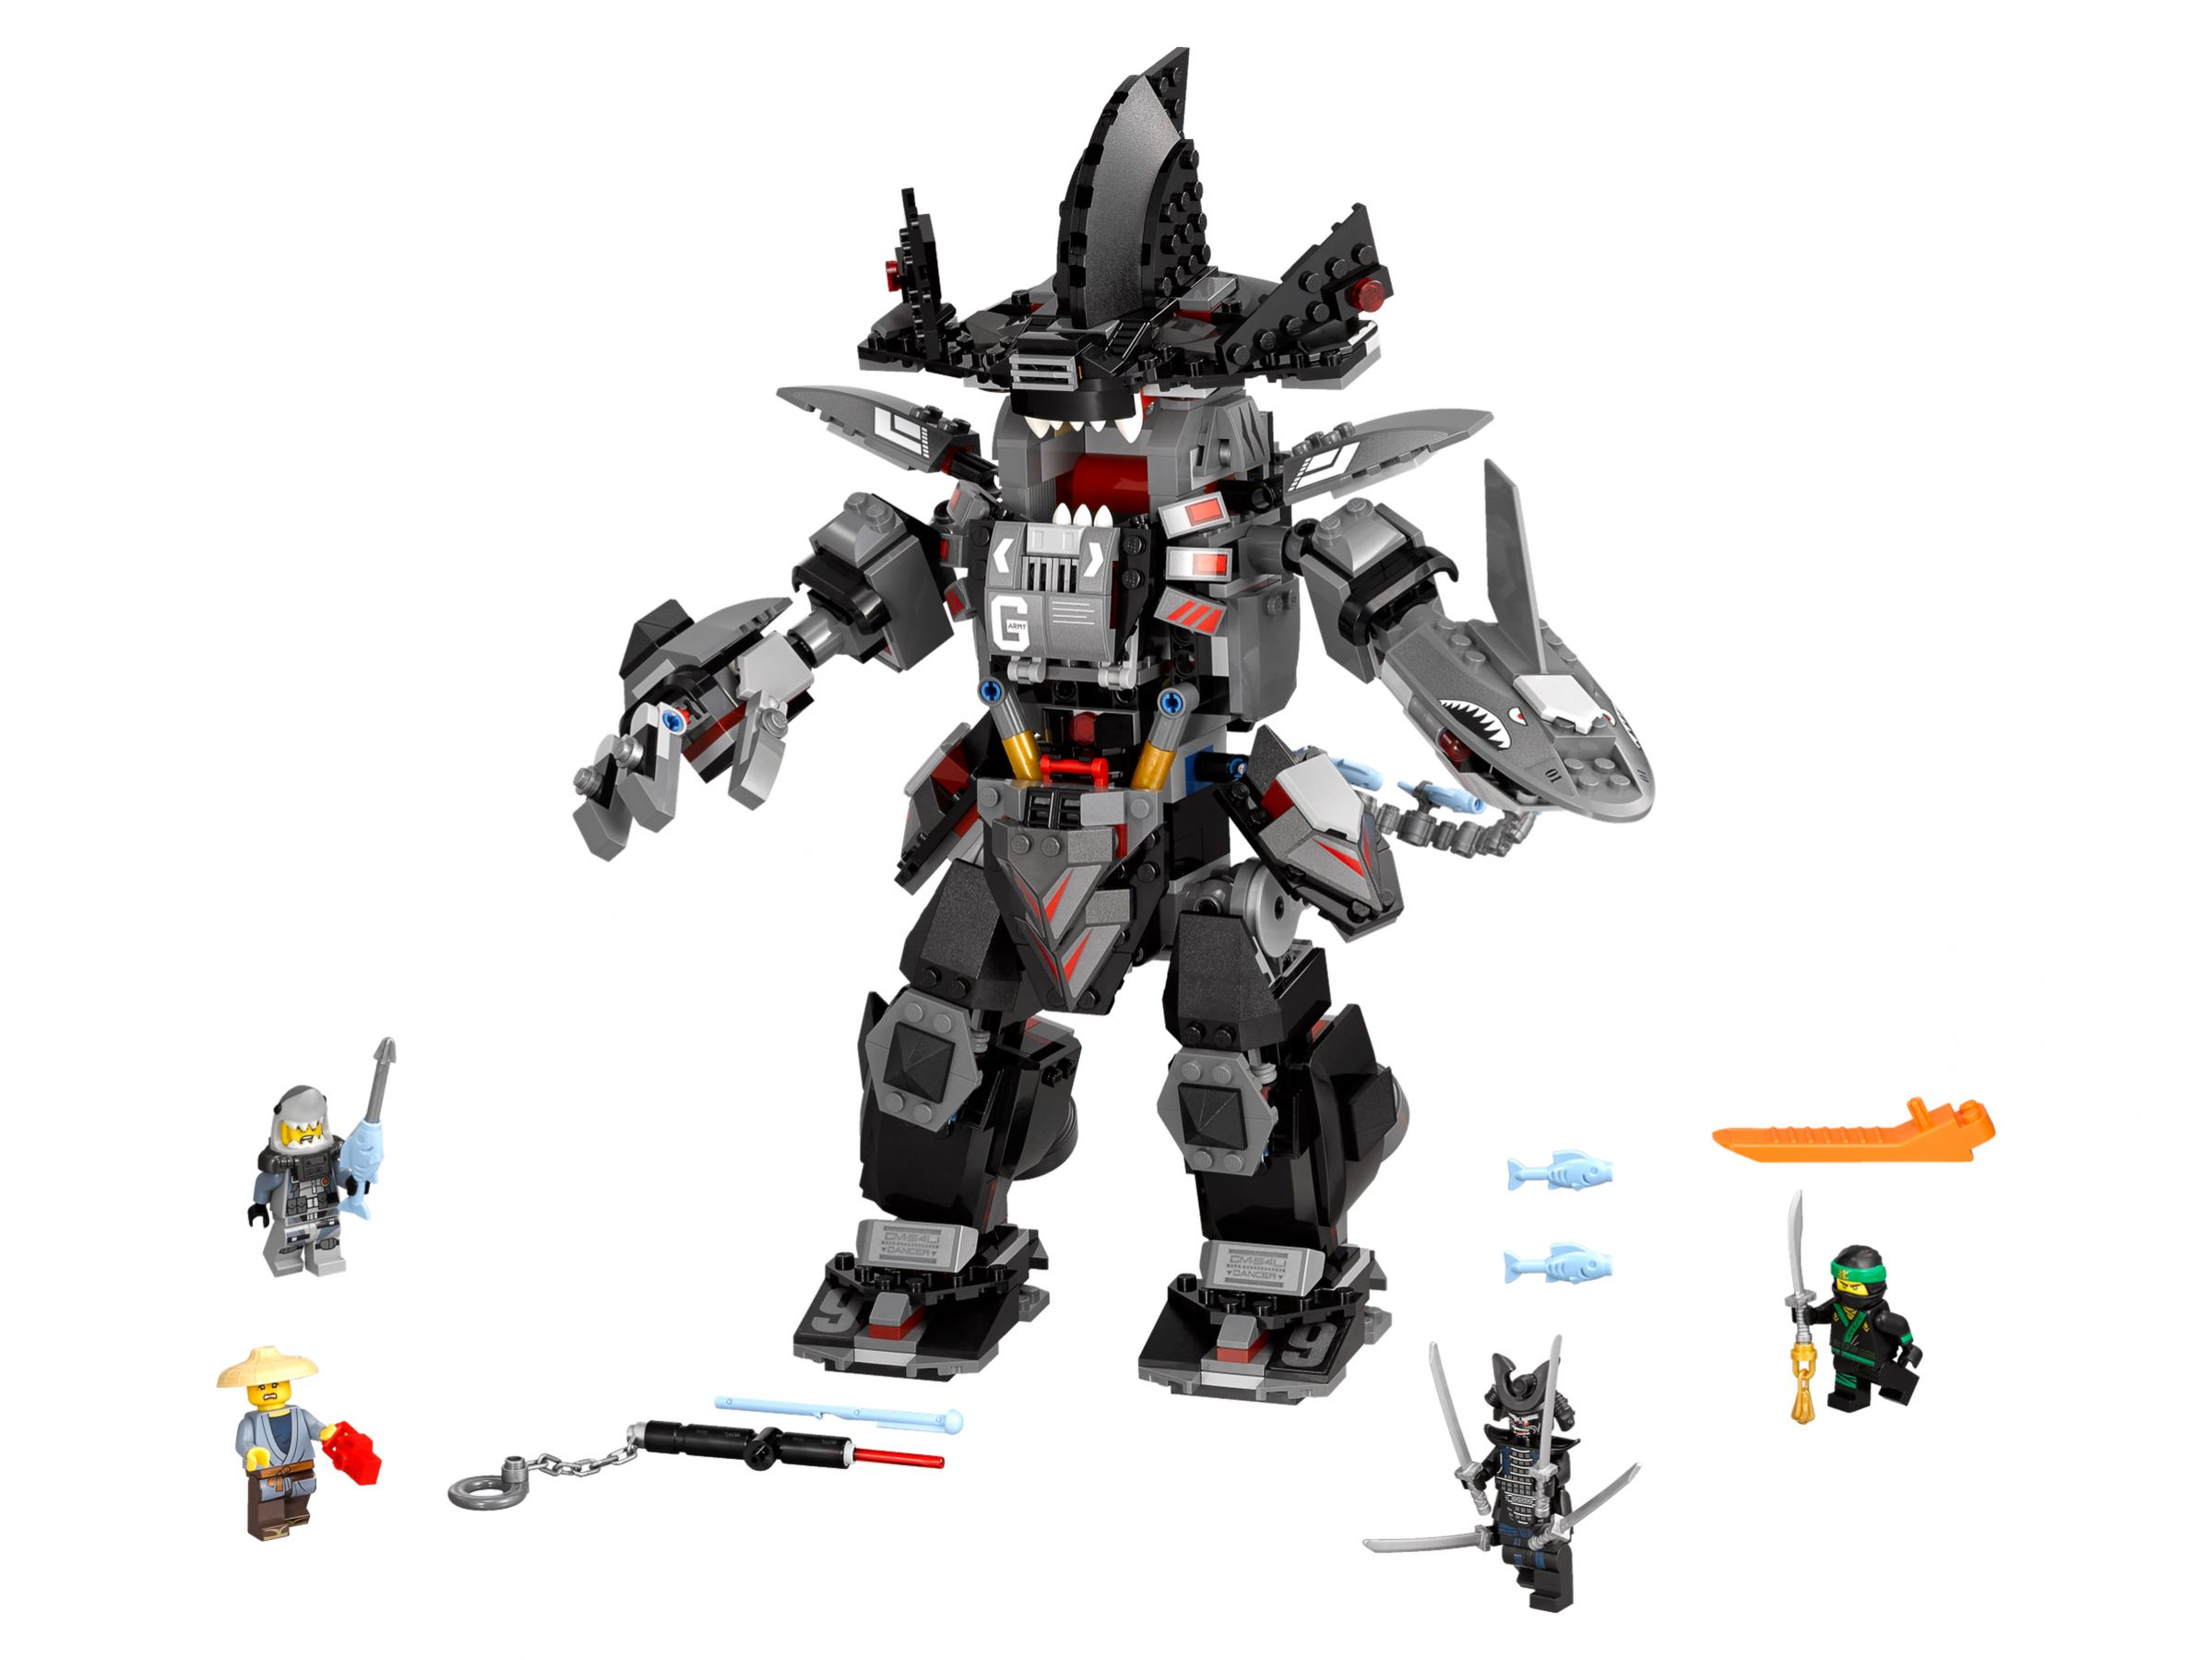 LEGO The LEGO Ninjago Movie 70613 Garmadon's Robo-Hai